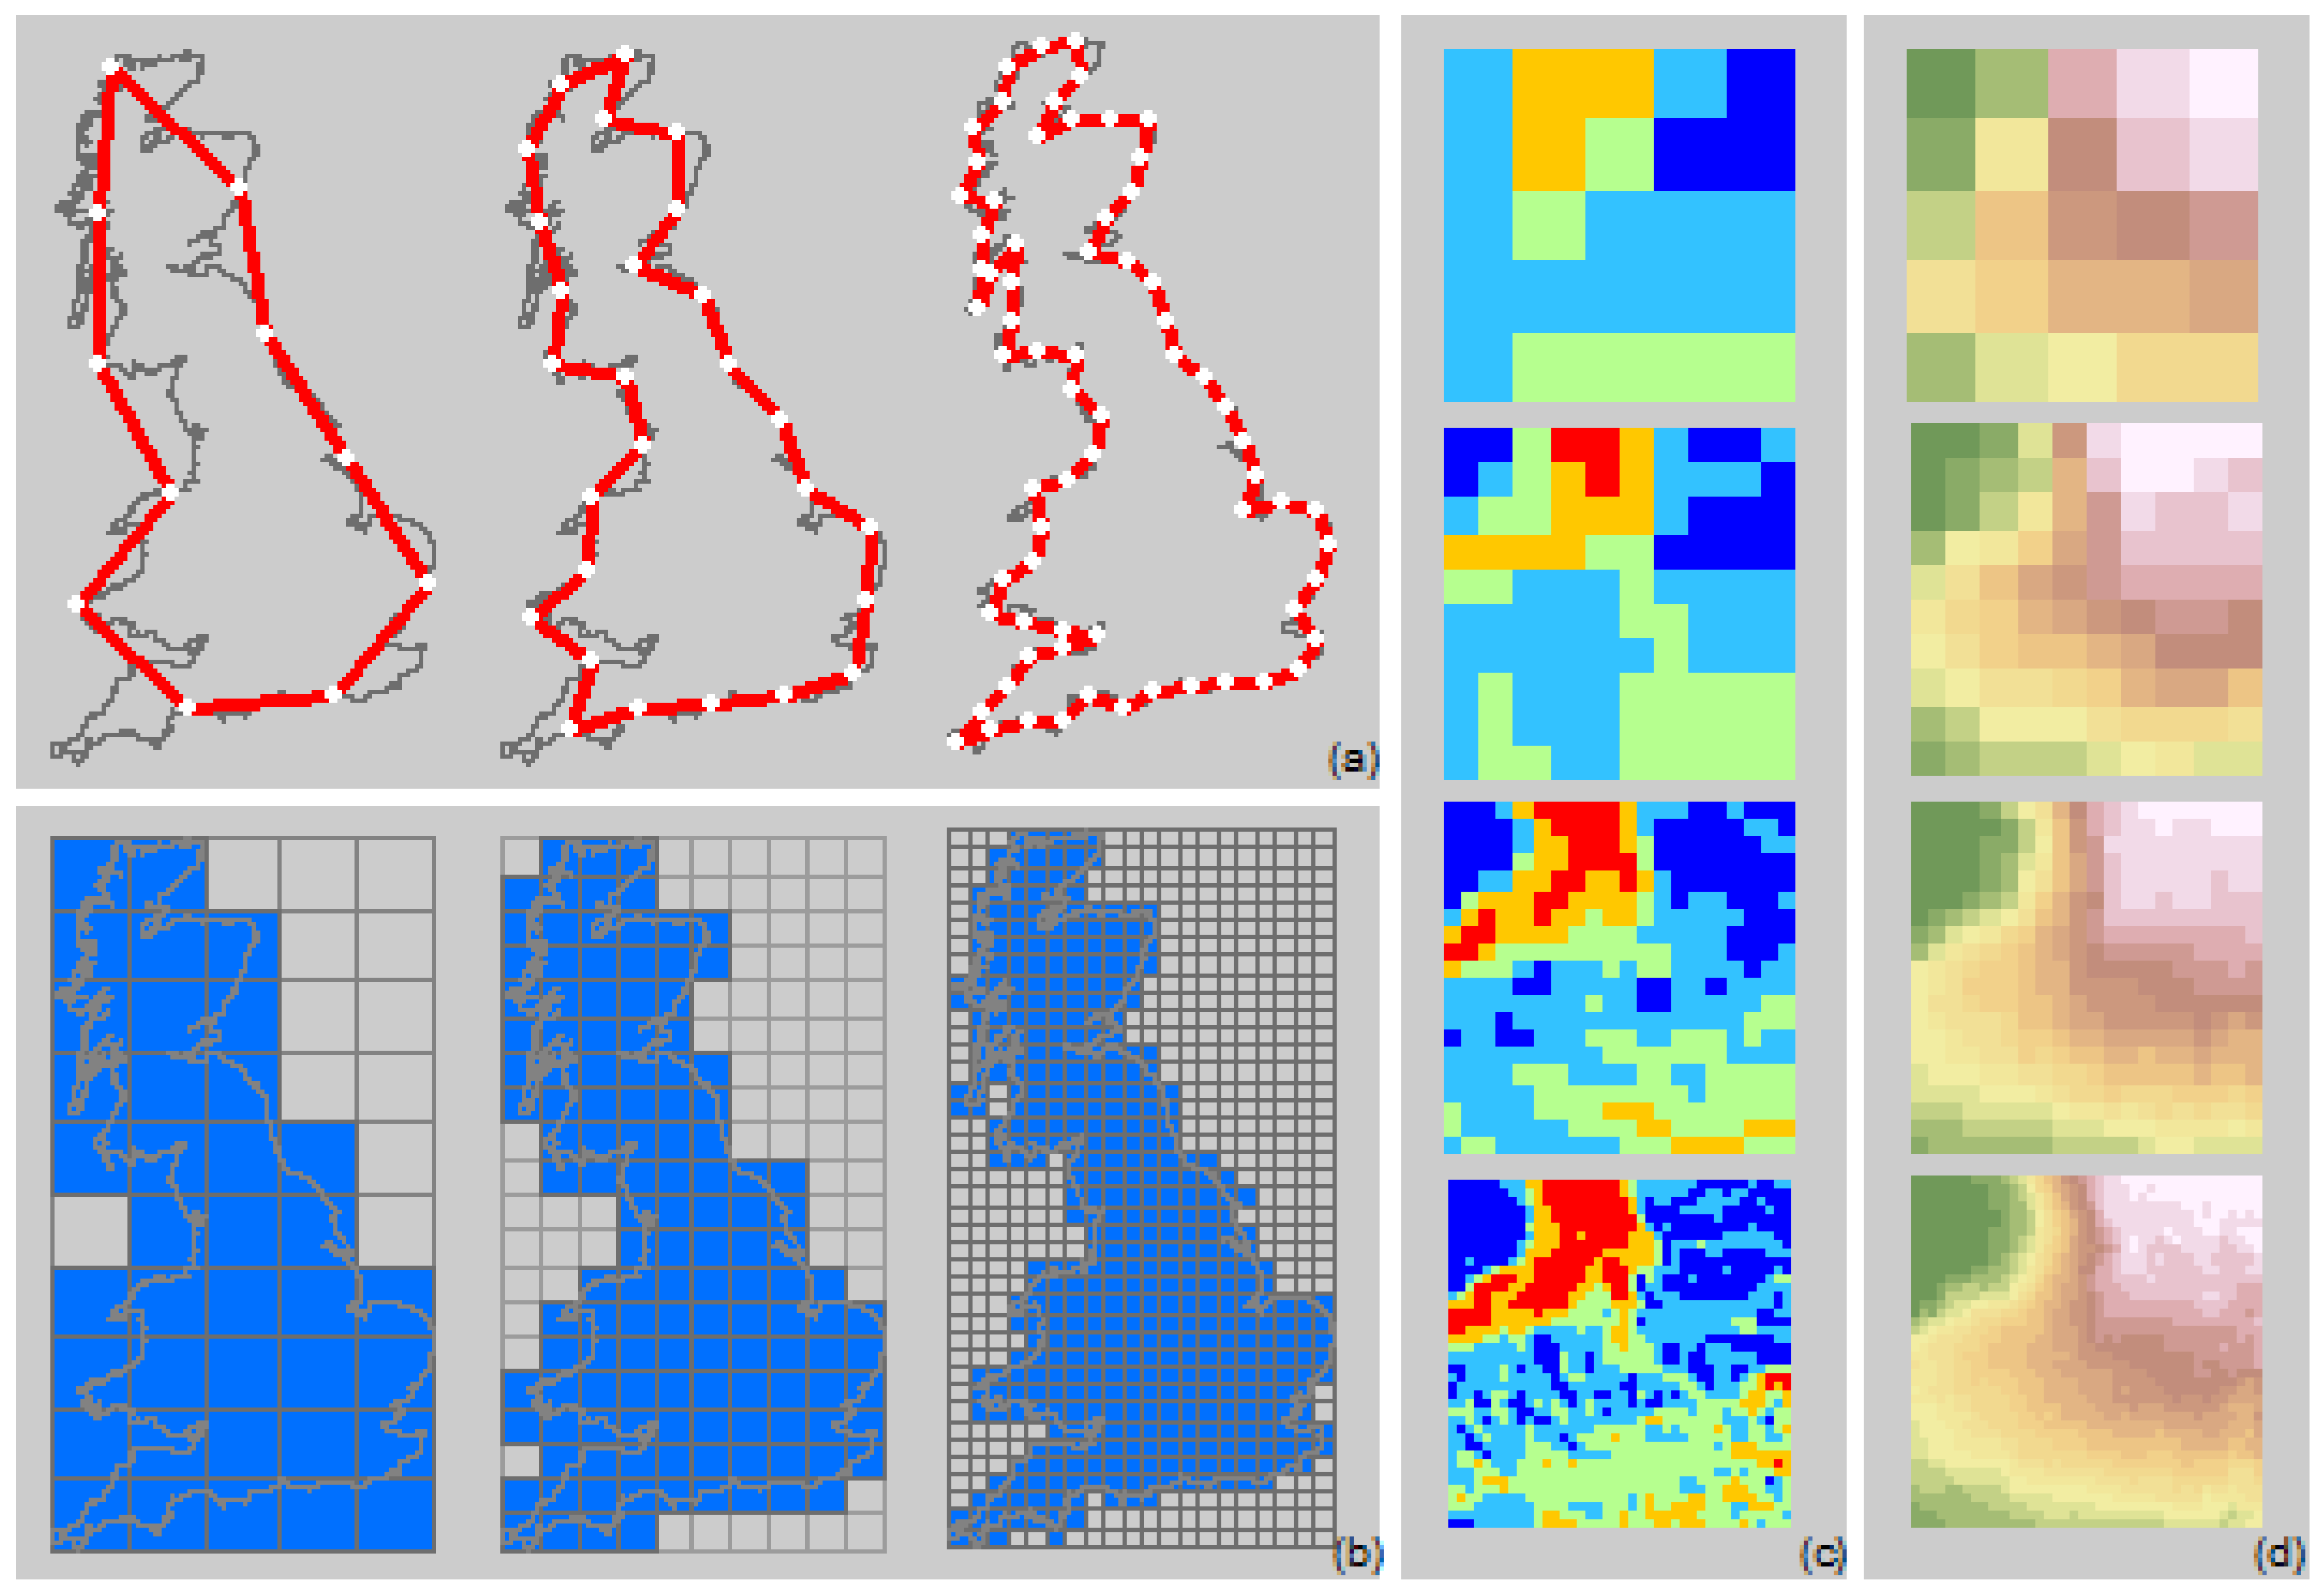 IJGI | Free Full-Text | A Fractal Perspective on Scale in